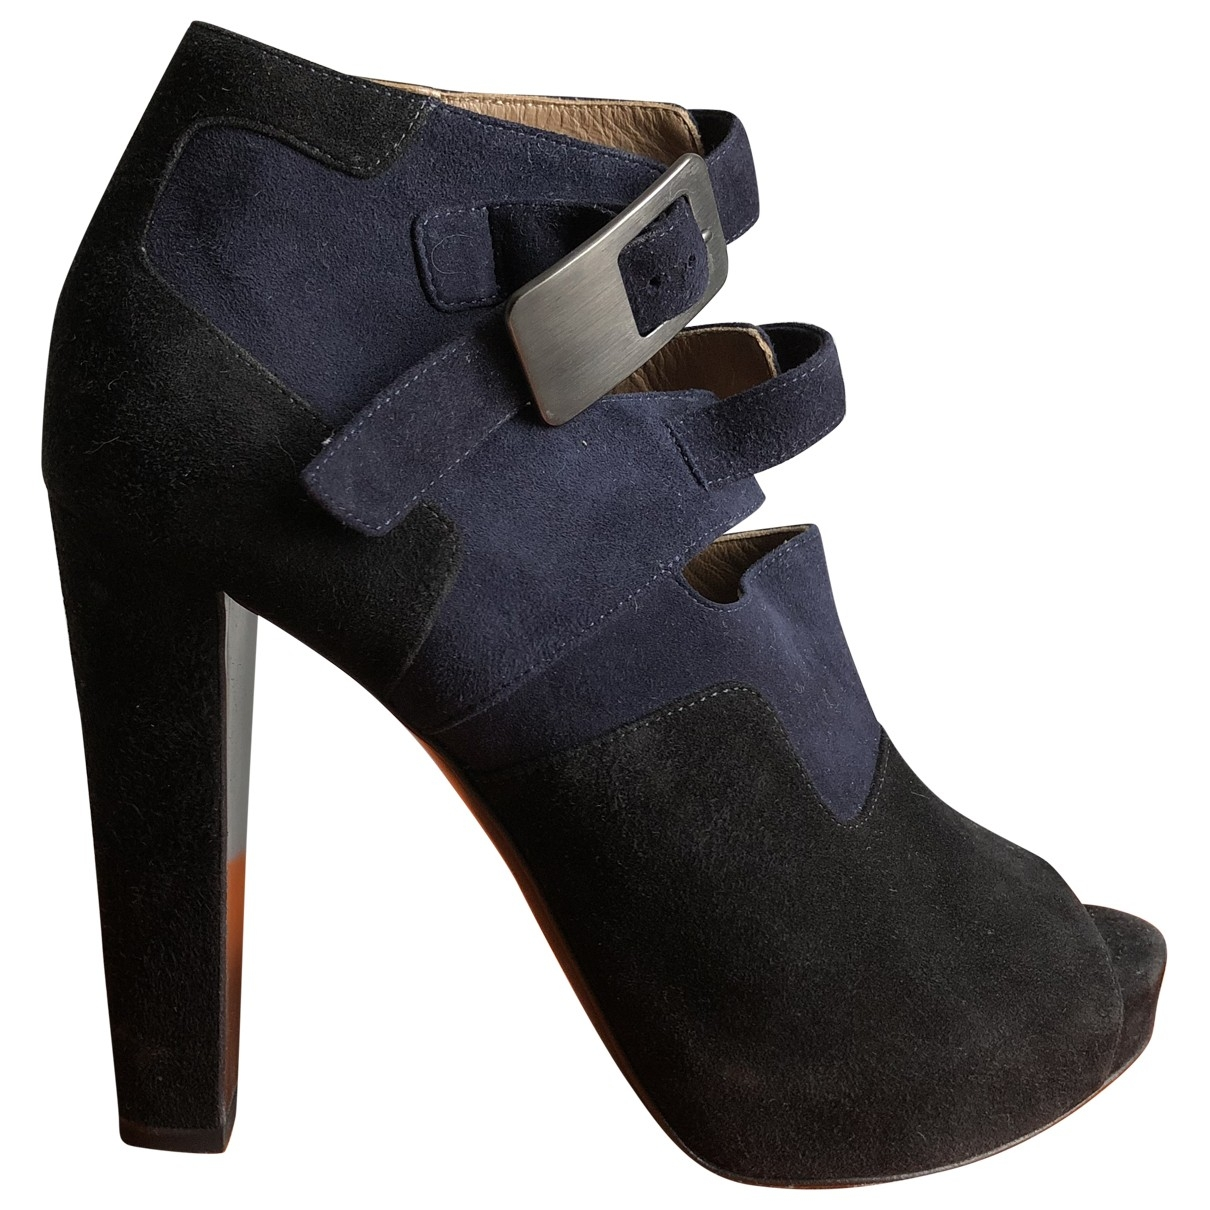 Hermès \N Navy Suede Ankle boots for Women 36.5 EU